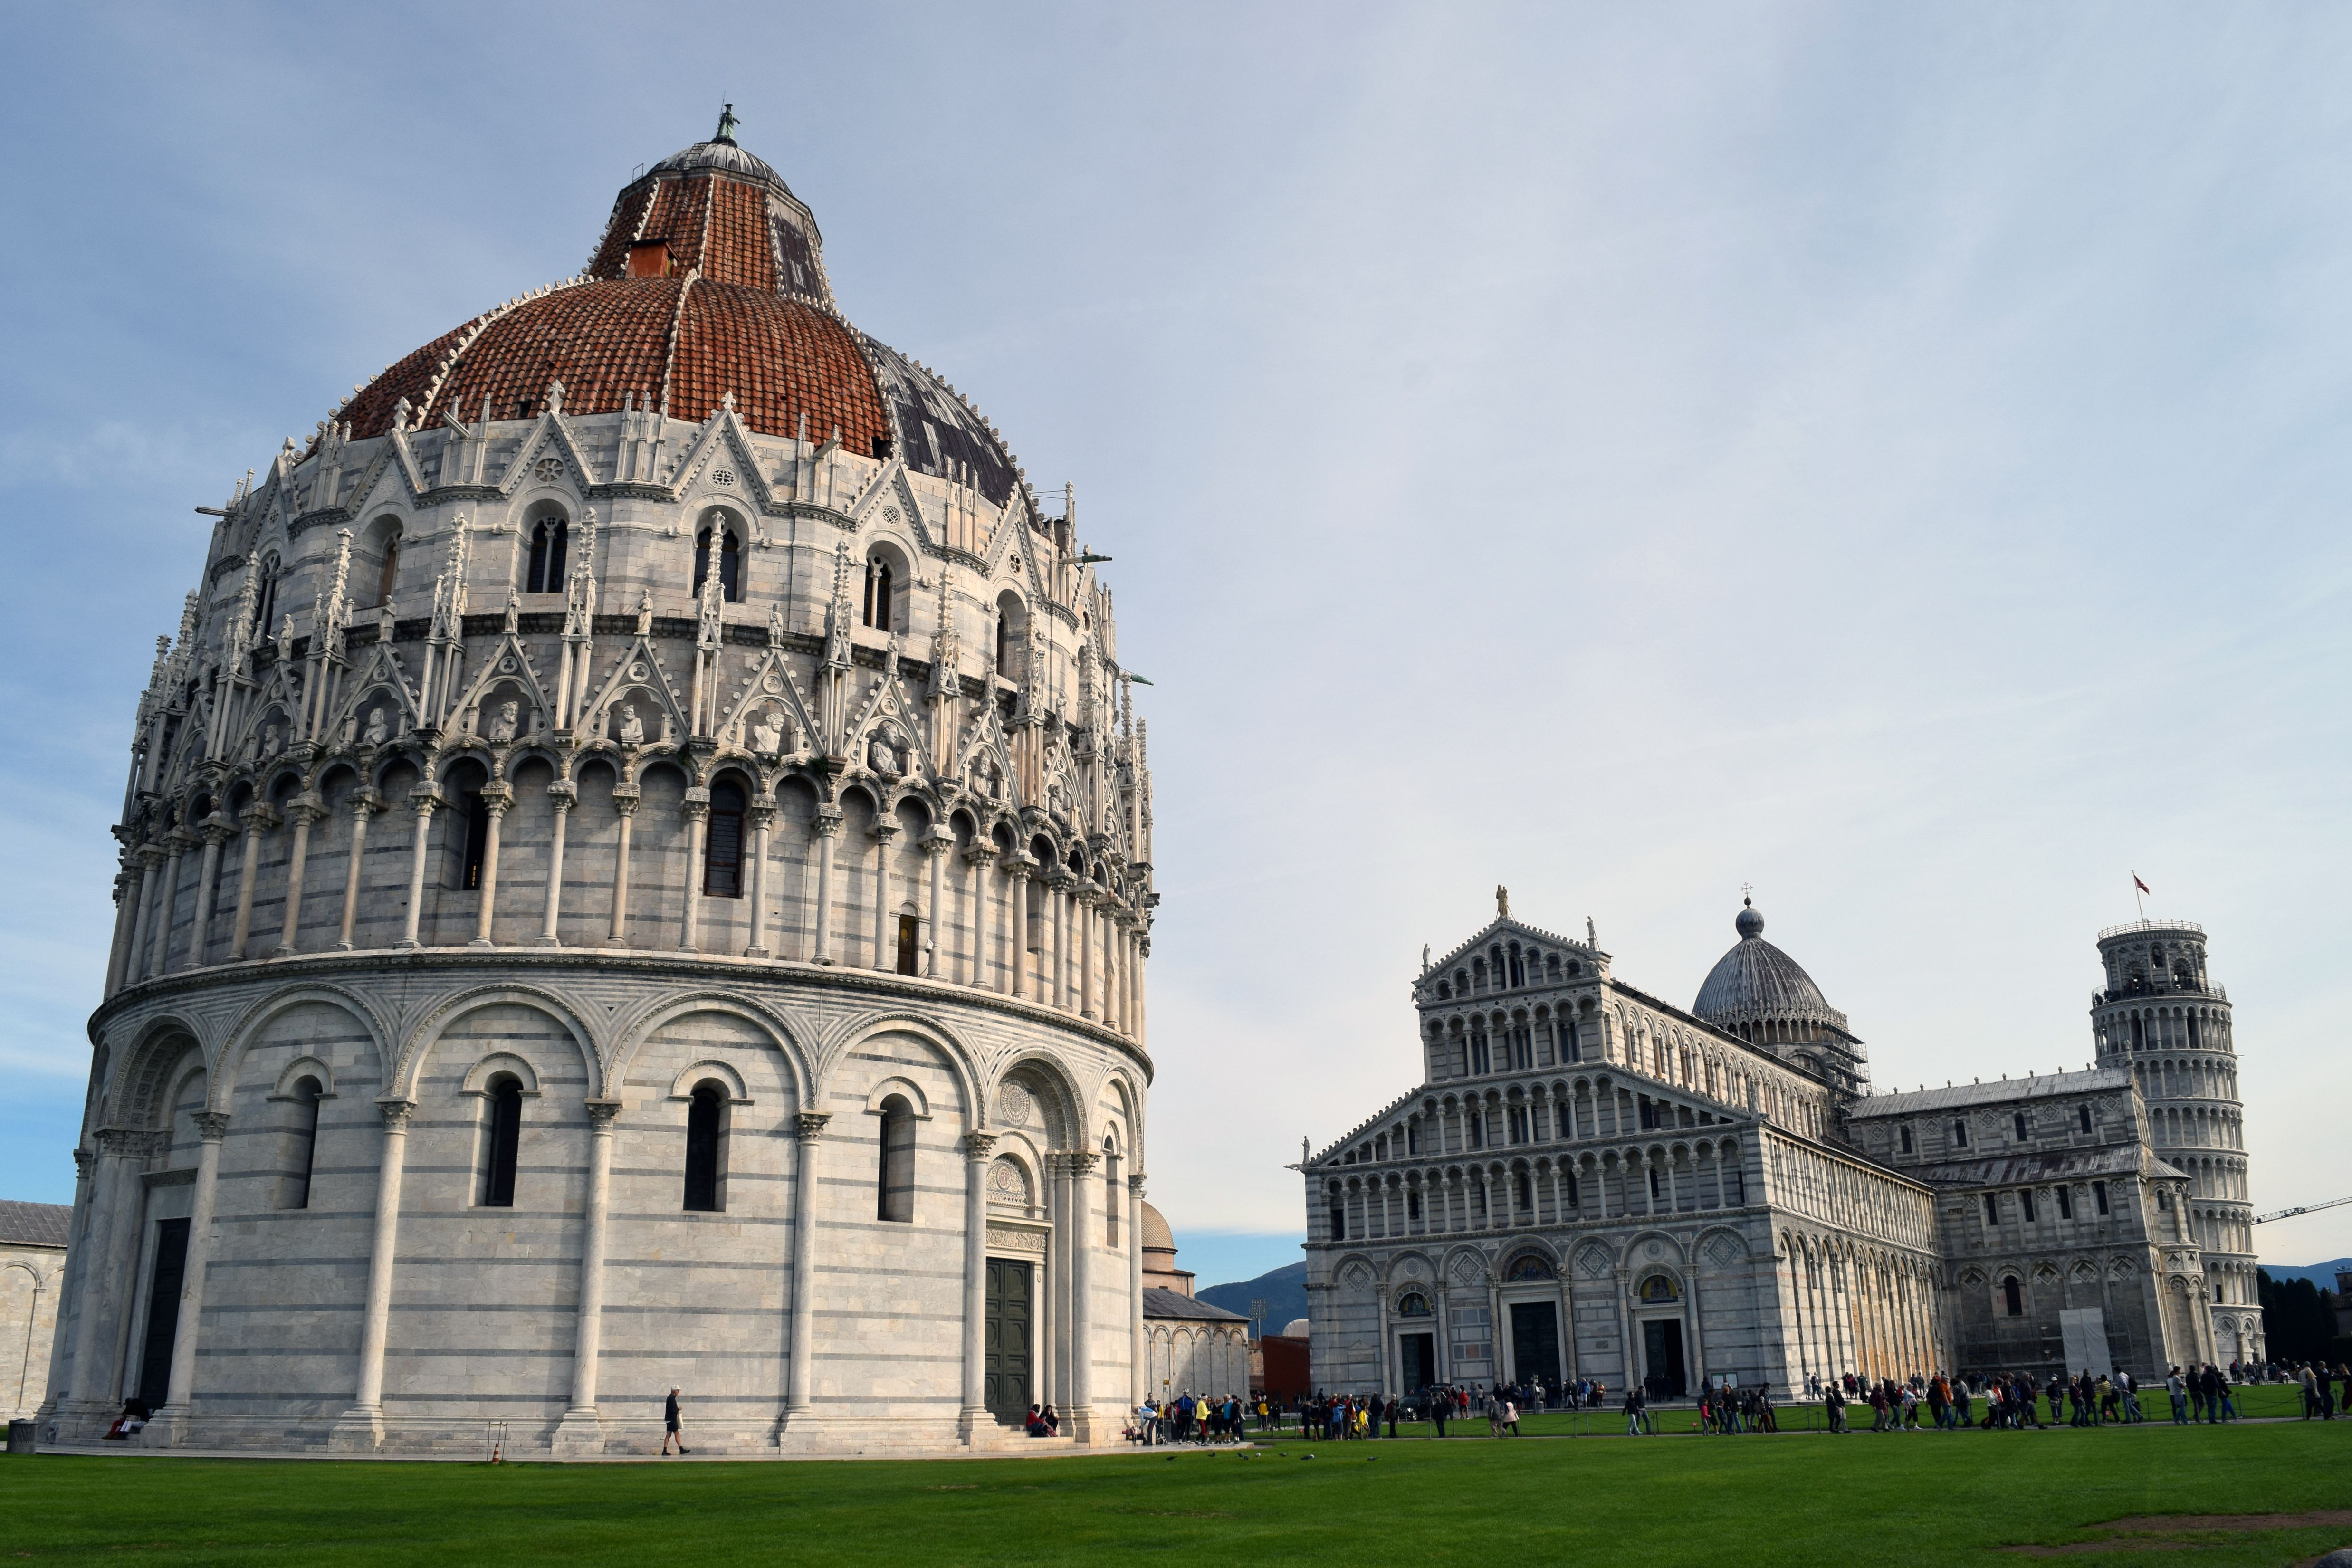 Piazza dei Miracoli, the location of the famous Leaning Tower of Pisa. We weren't allowed inside the Duomo because there was a funeral service being held at the time. Still gorgeous, though! A larg...